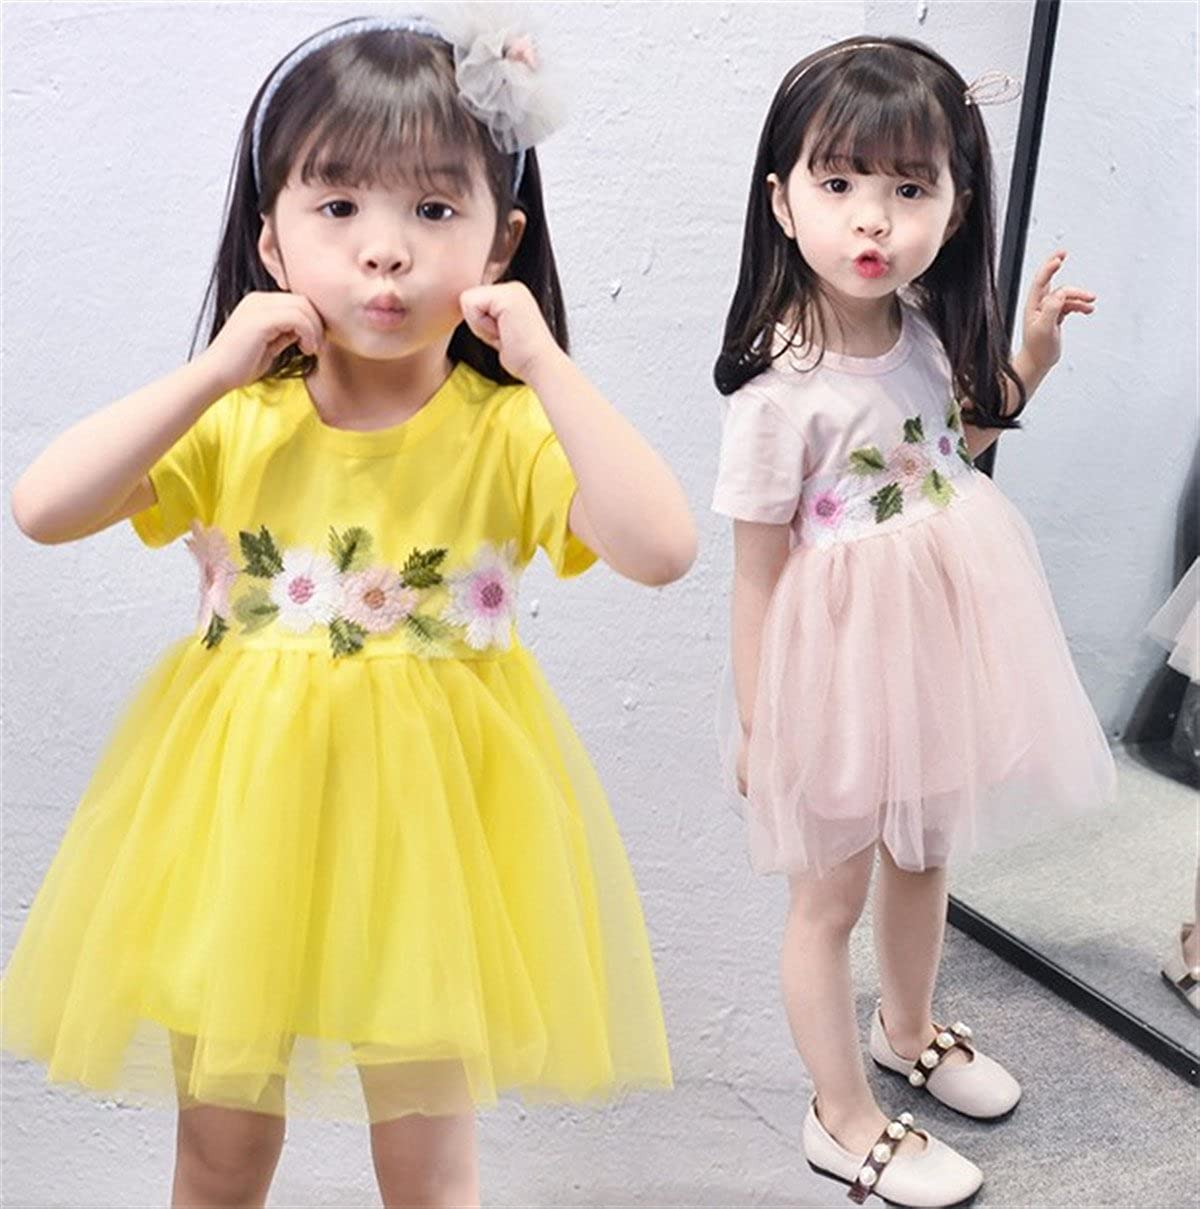 Mornbaby Toddler Kids Baby Girls Knitted Tulle Cap Tutu Dresses Jersey Dress Outfit